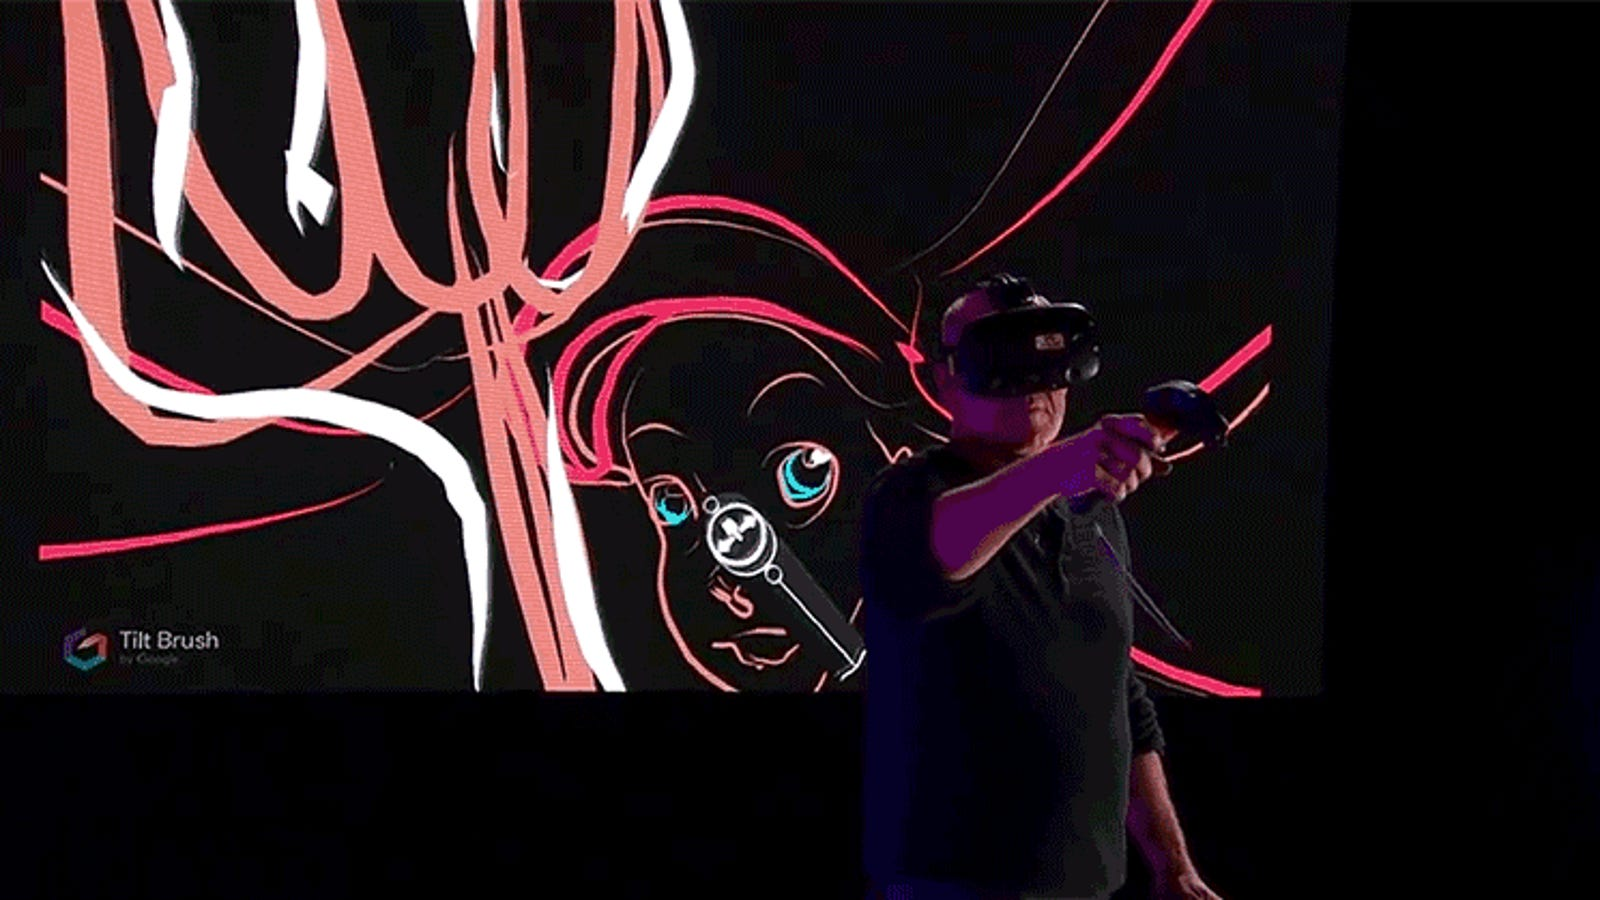 Watch a Legendary Disney Animator Draw Ariel From The Little Mermaid in Virtual Reality